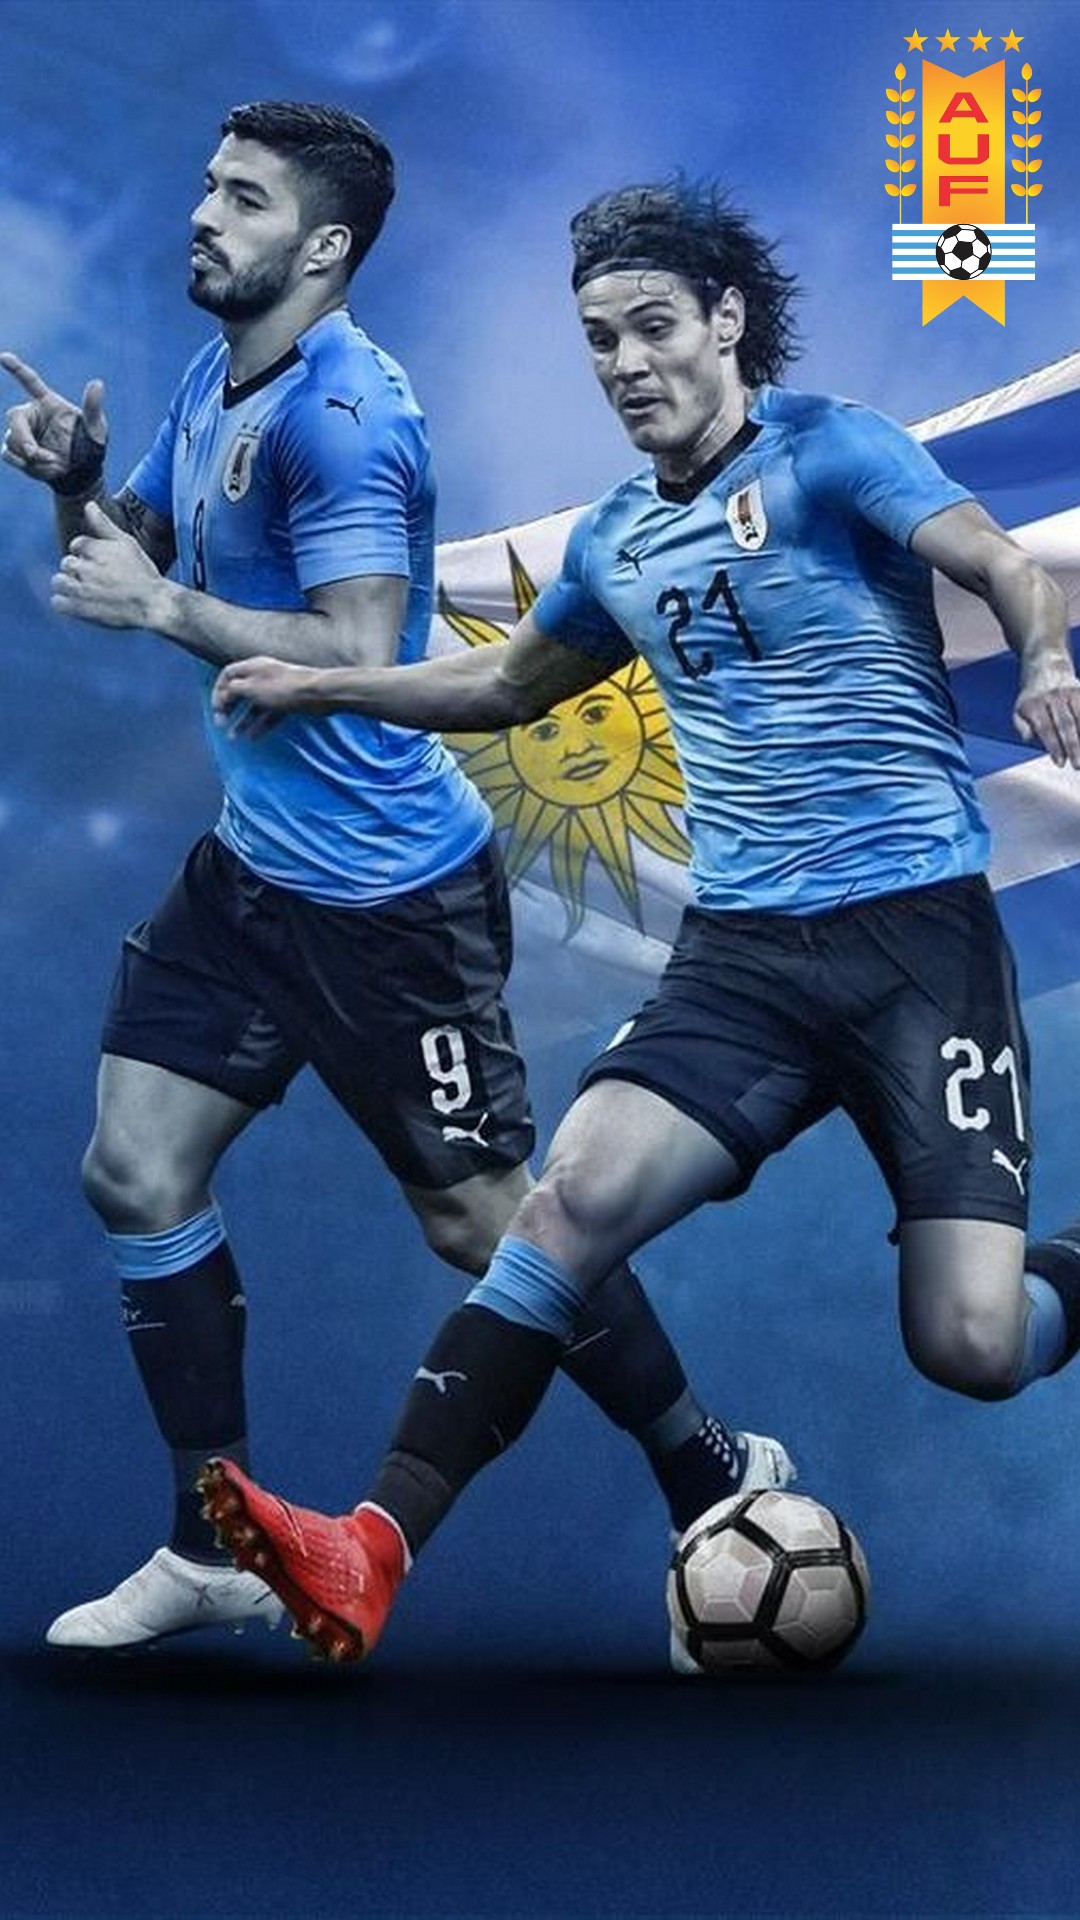 Iphone Wallpaper Hd Uruguay National Team With Resolution - Uruguay Wallpaper Iphone , HD Wallpaper & Backgrounds